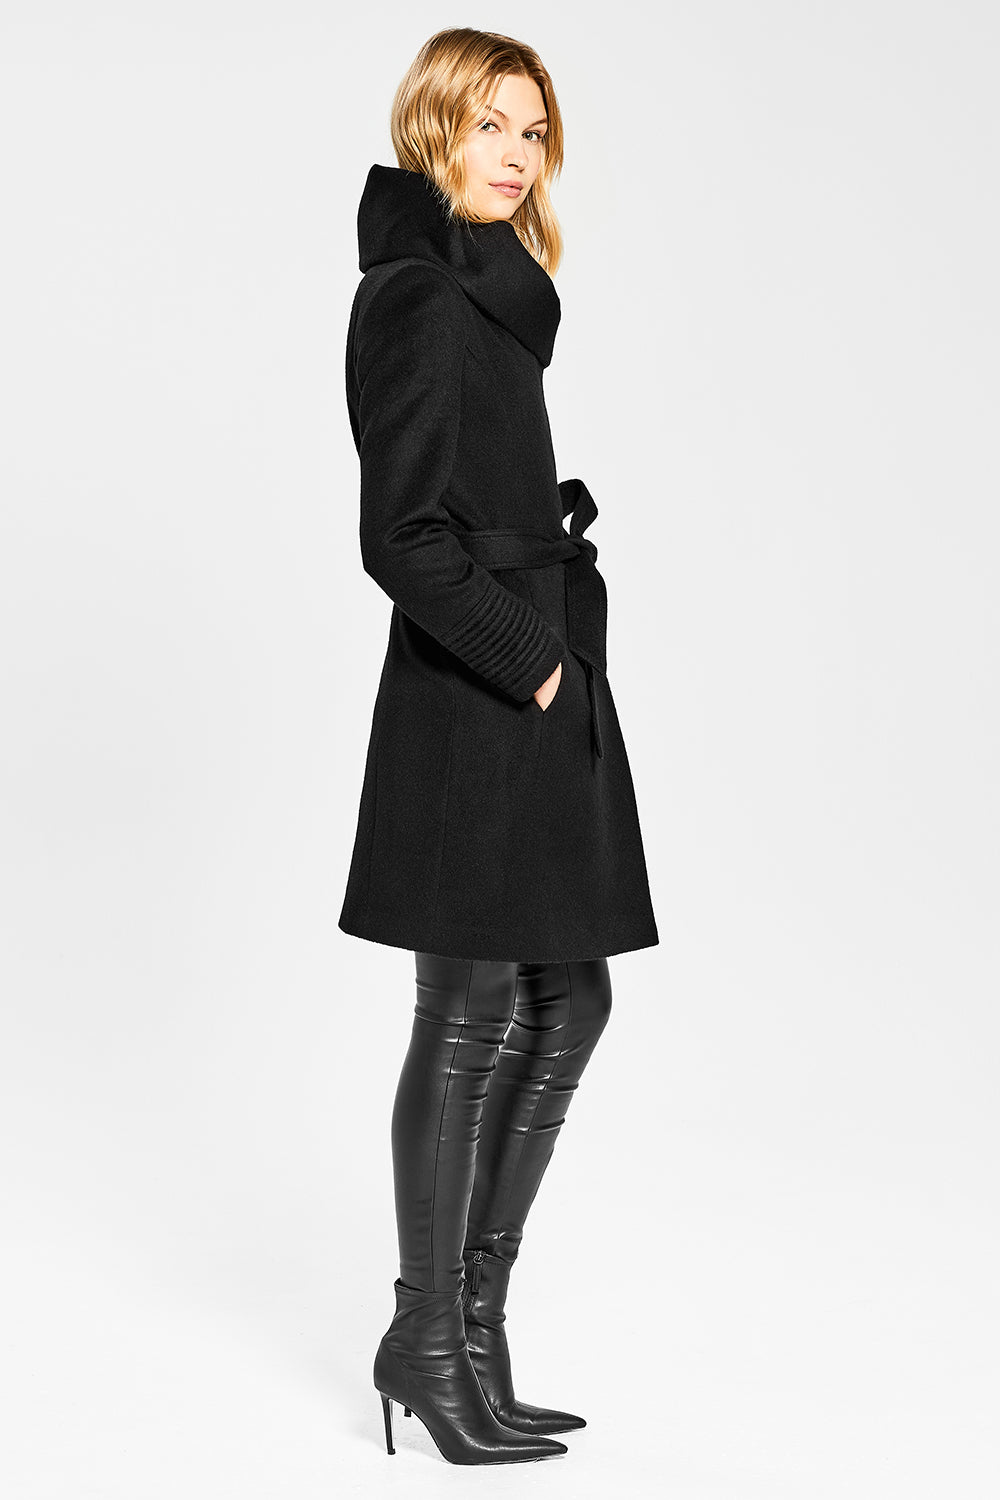 Sentaler Mid Length Hooded Wrap Coat featured in Baby Alpaca and available in Black. Seen from side.